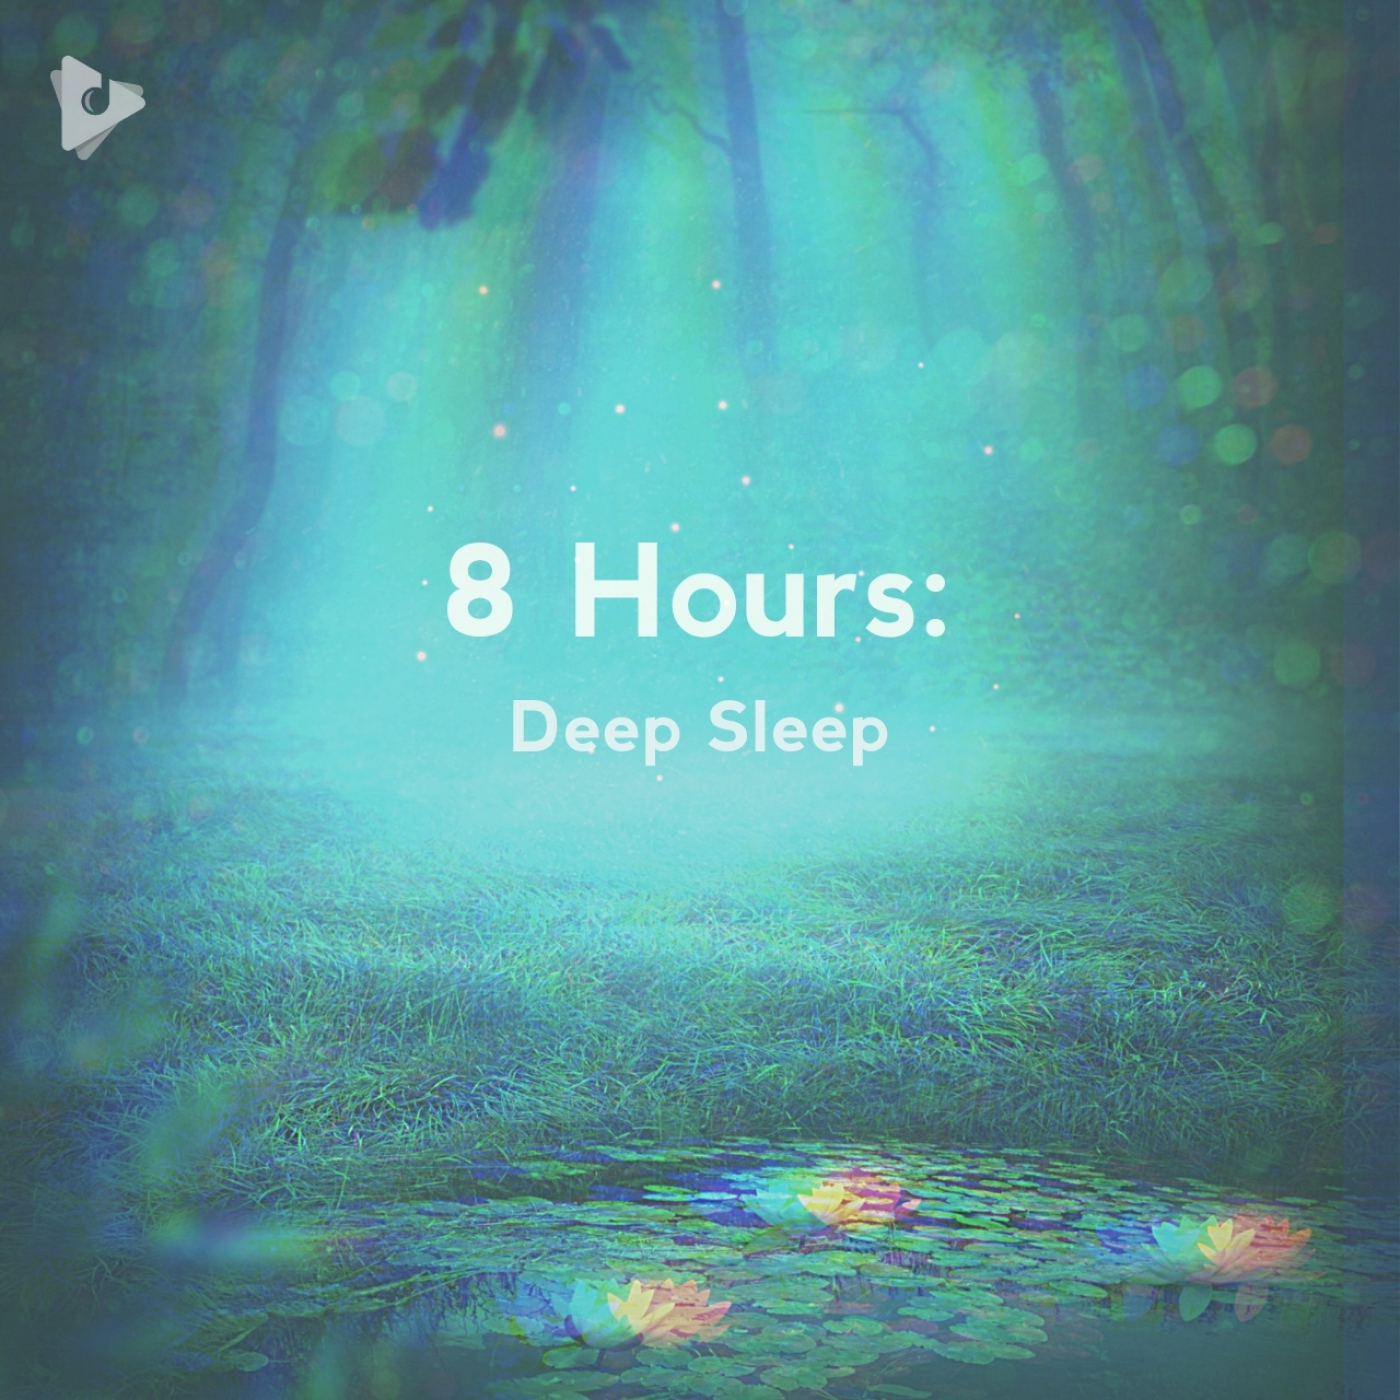 8 Hours: Deep Sleep